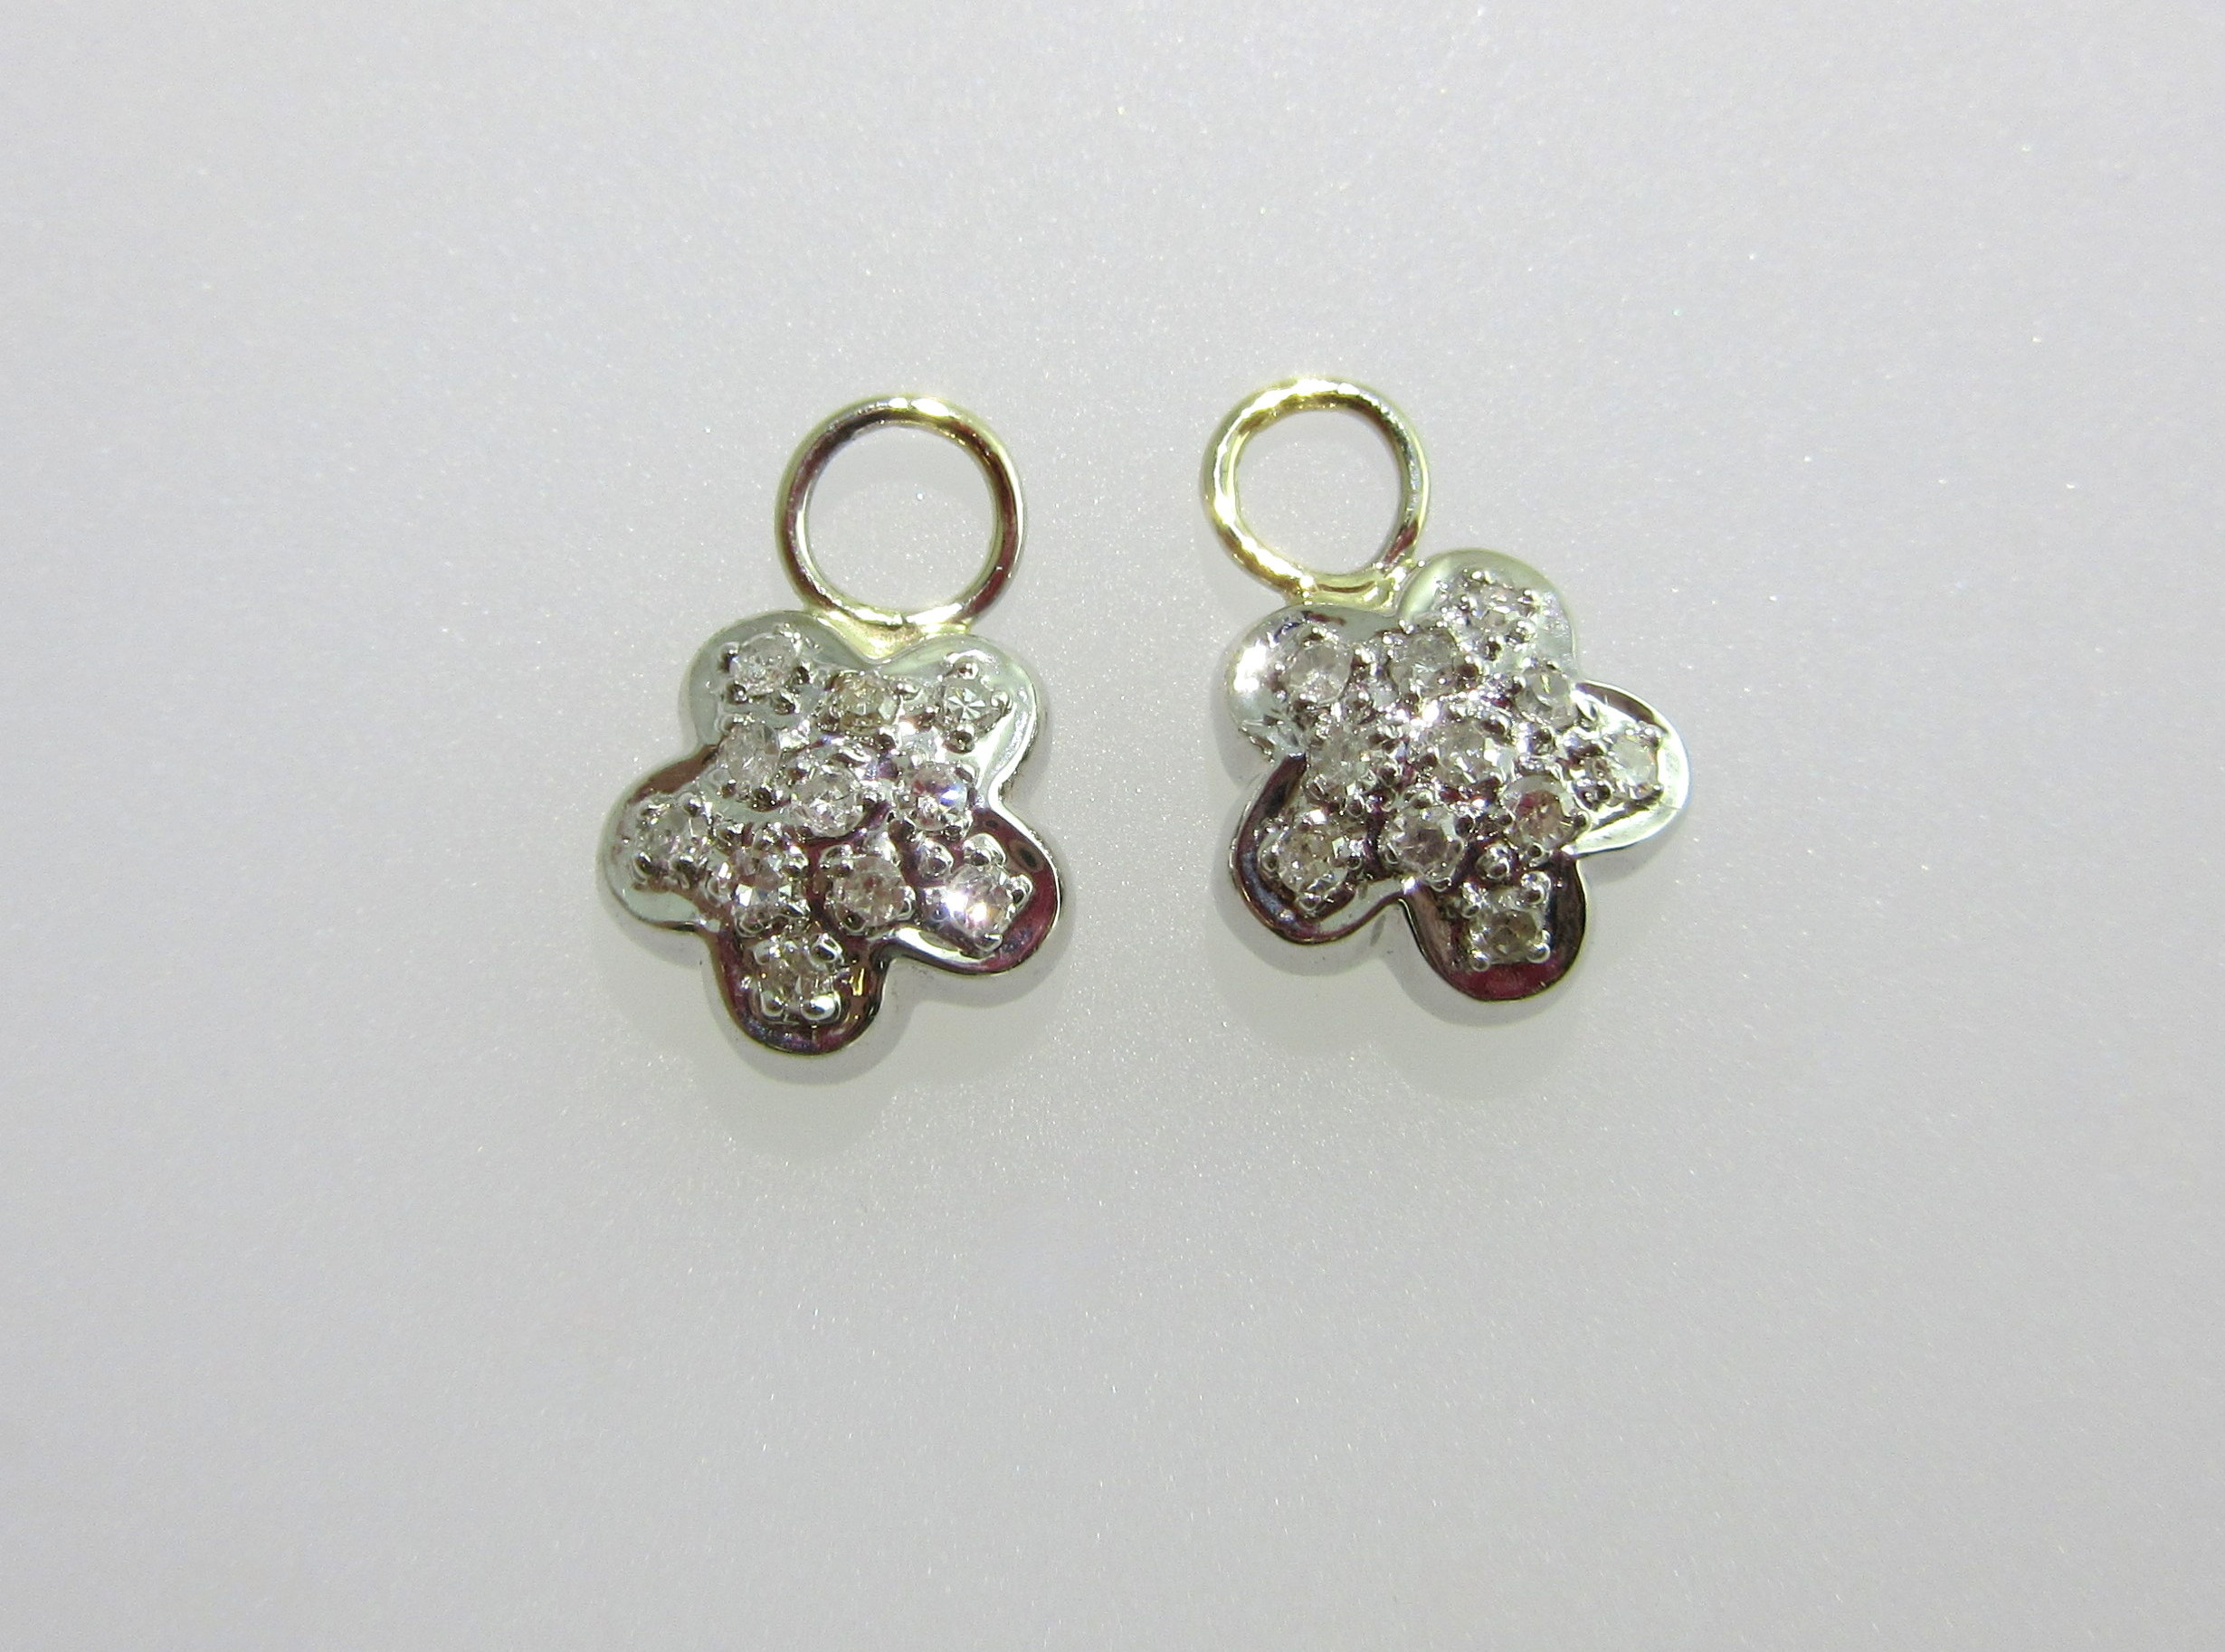 Small Diamond Flower Earring Charms